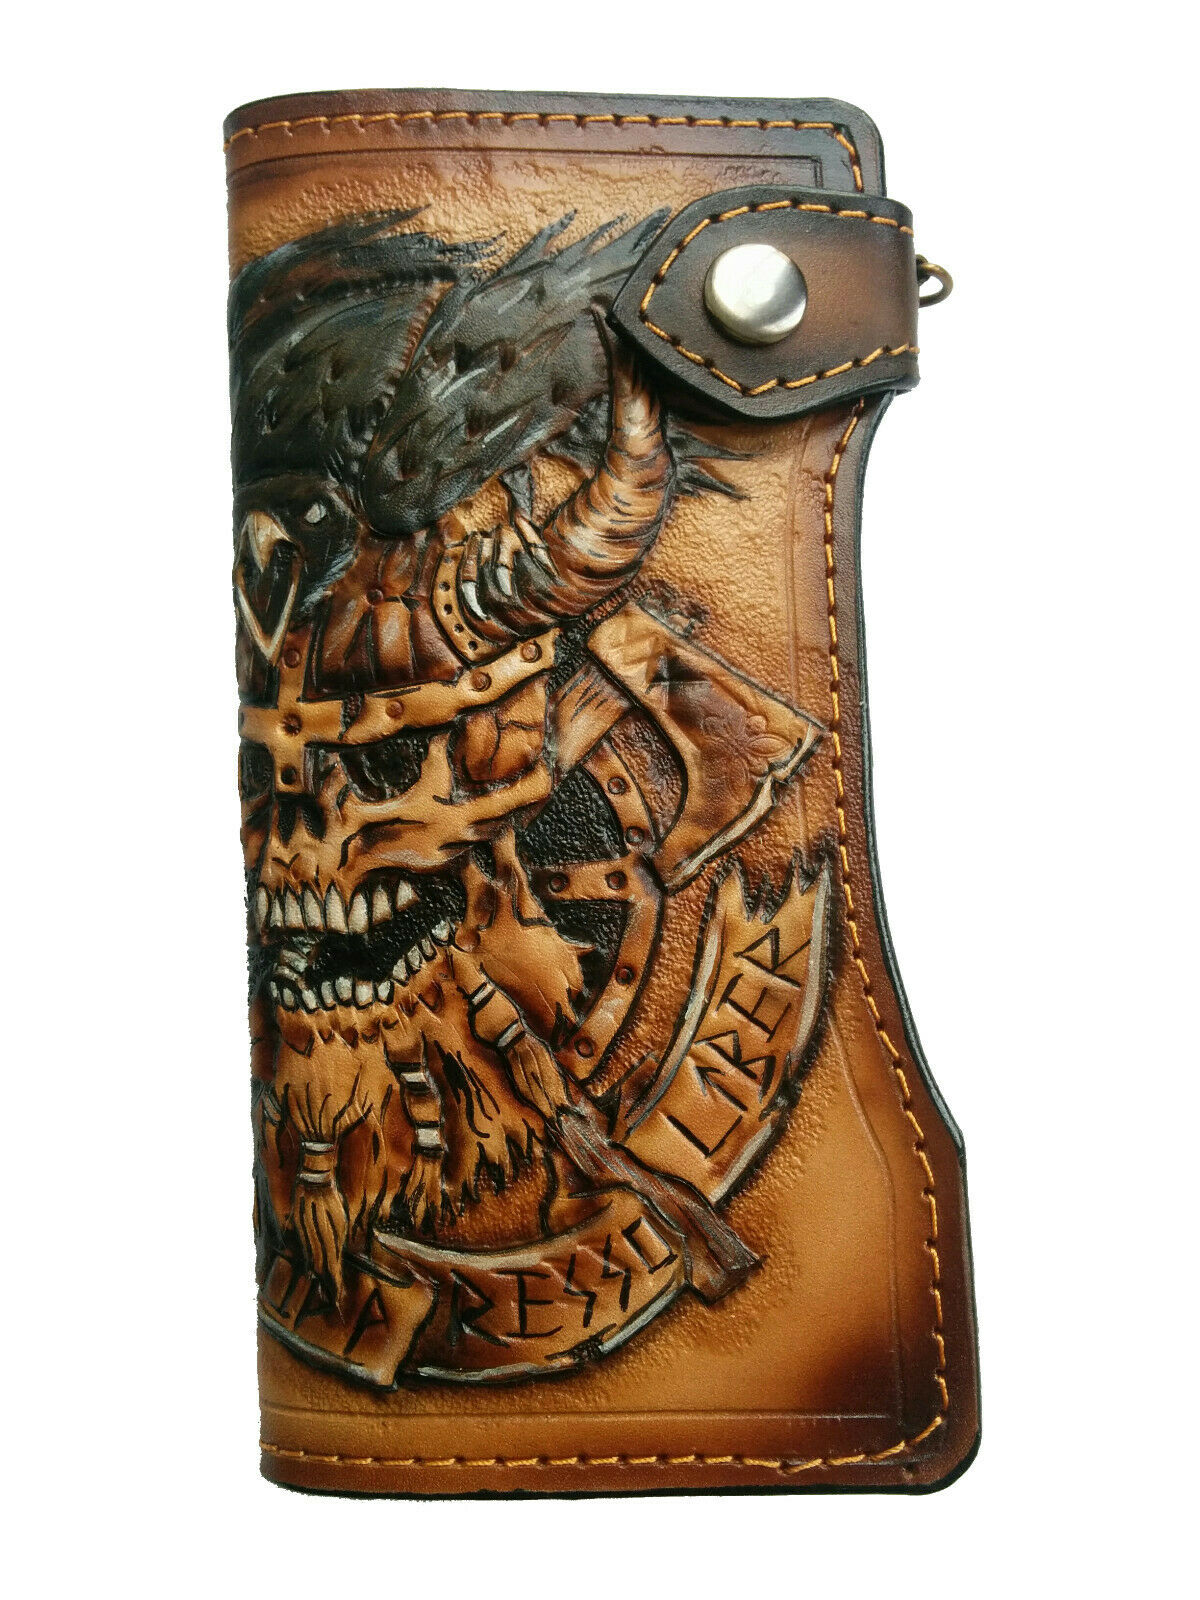 3D Leather Long Wallet, Hand-Carved, Airbrush Art, Viking, Crow, Skull, Initials